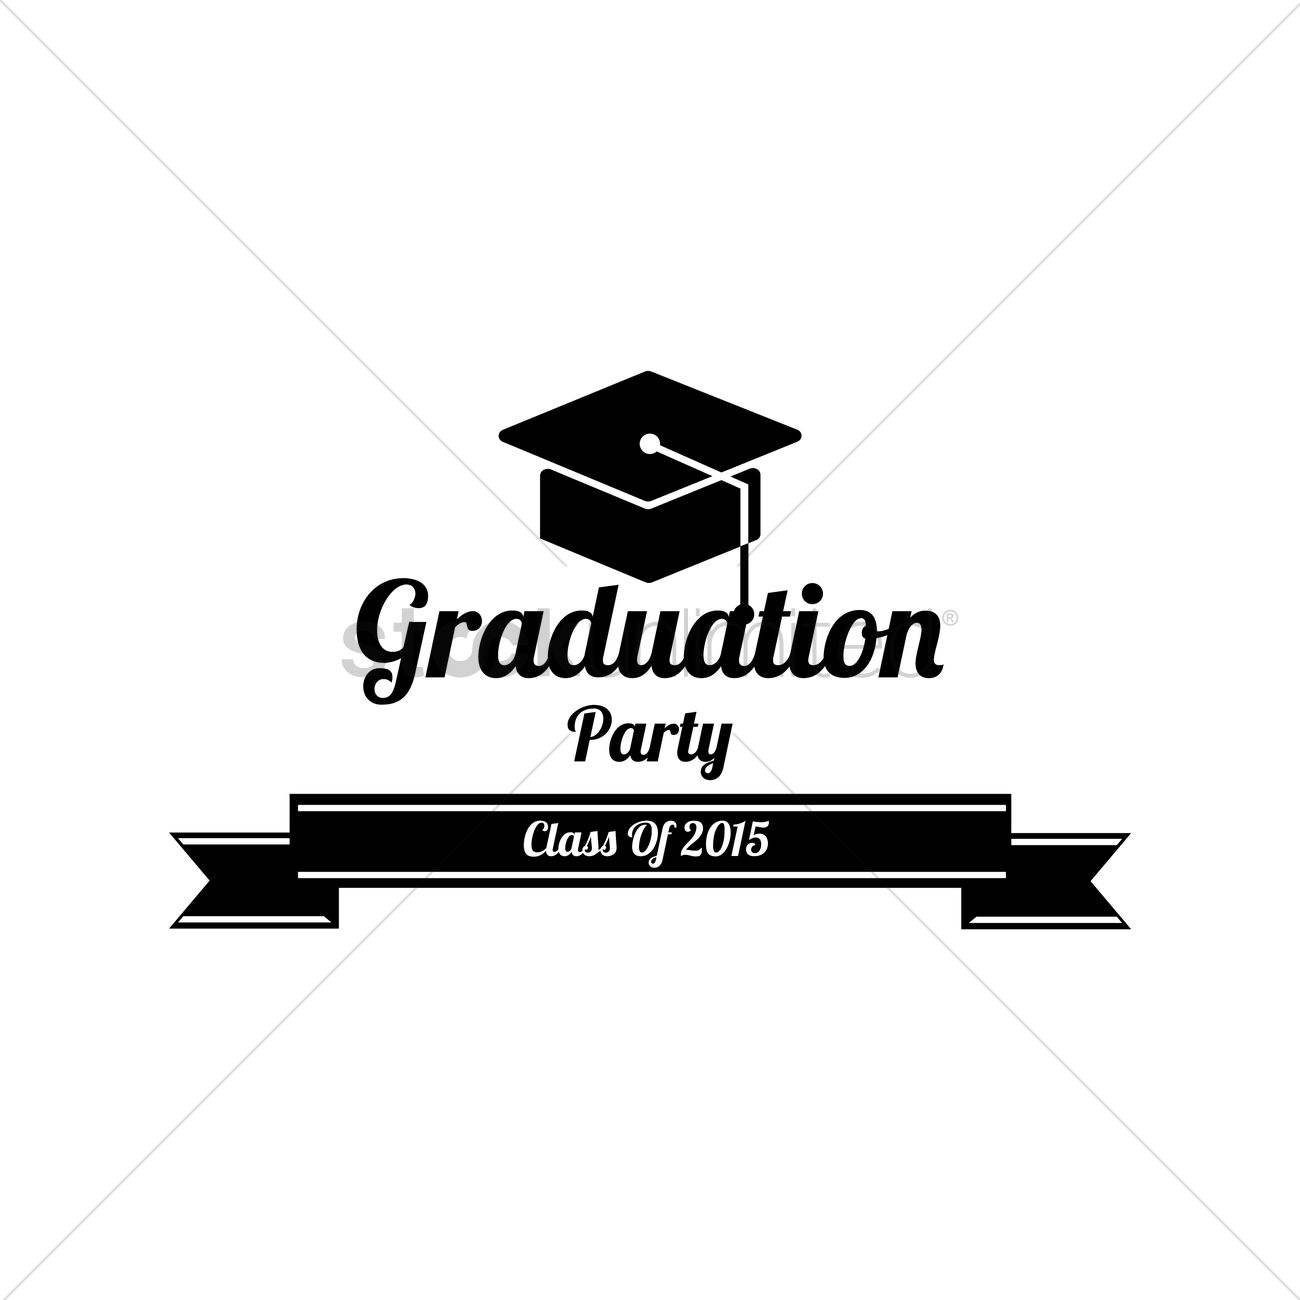 Graduation party label Vector Image.